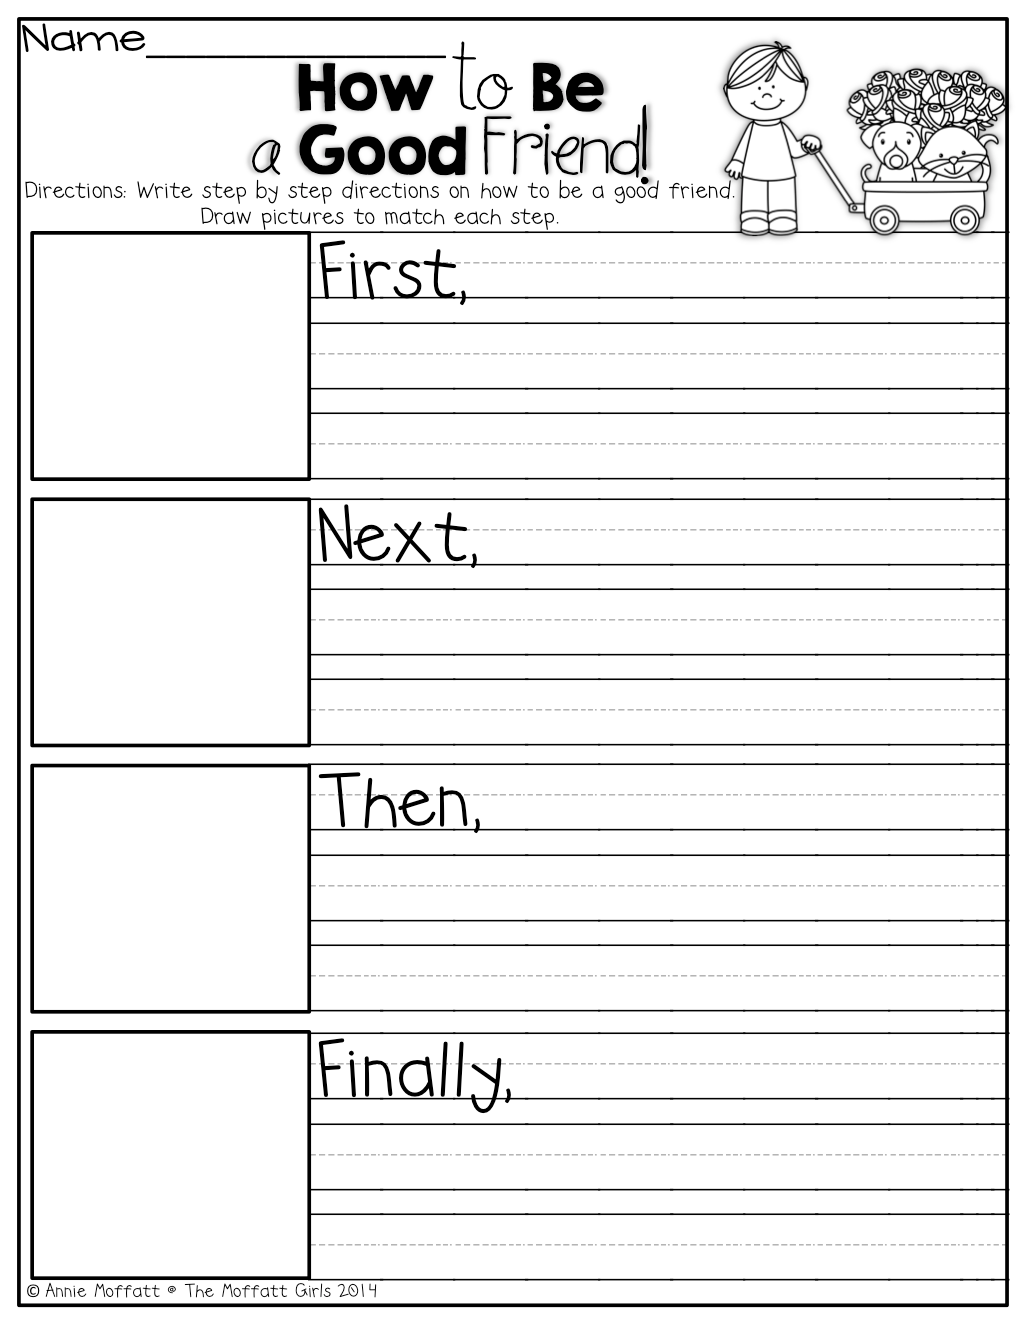 How To Be A Good Friend Writing Prompt Using Transitional Words